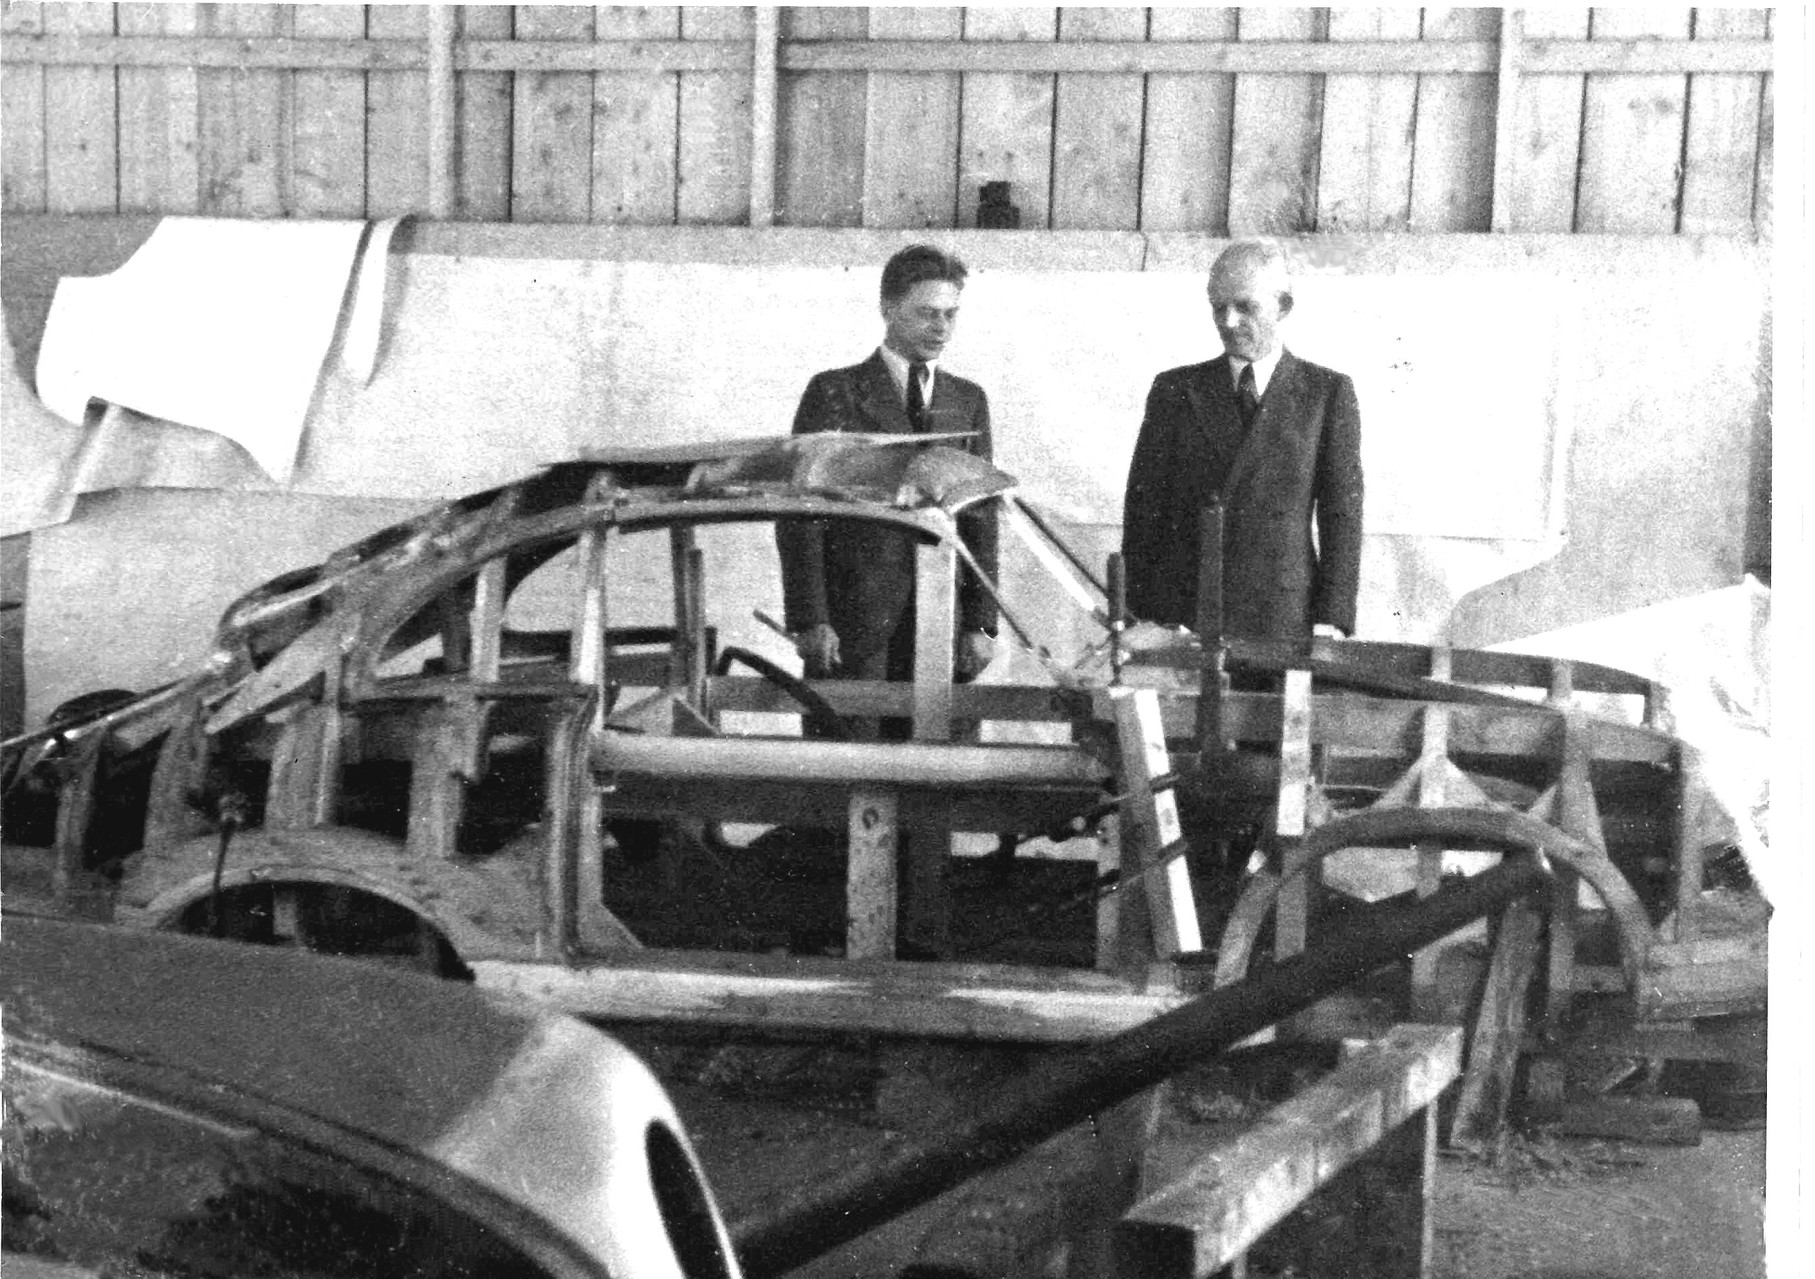 Eriwn Komenda and Otto Husslein: The wooden moue was used to hammer the sheet metal into the shape of the various body parts of the Porsche 356 Coupe.